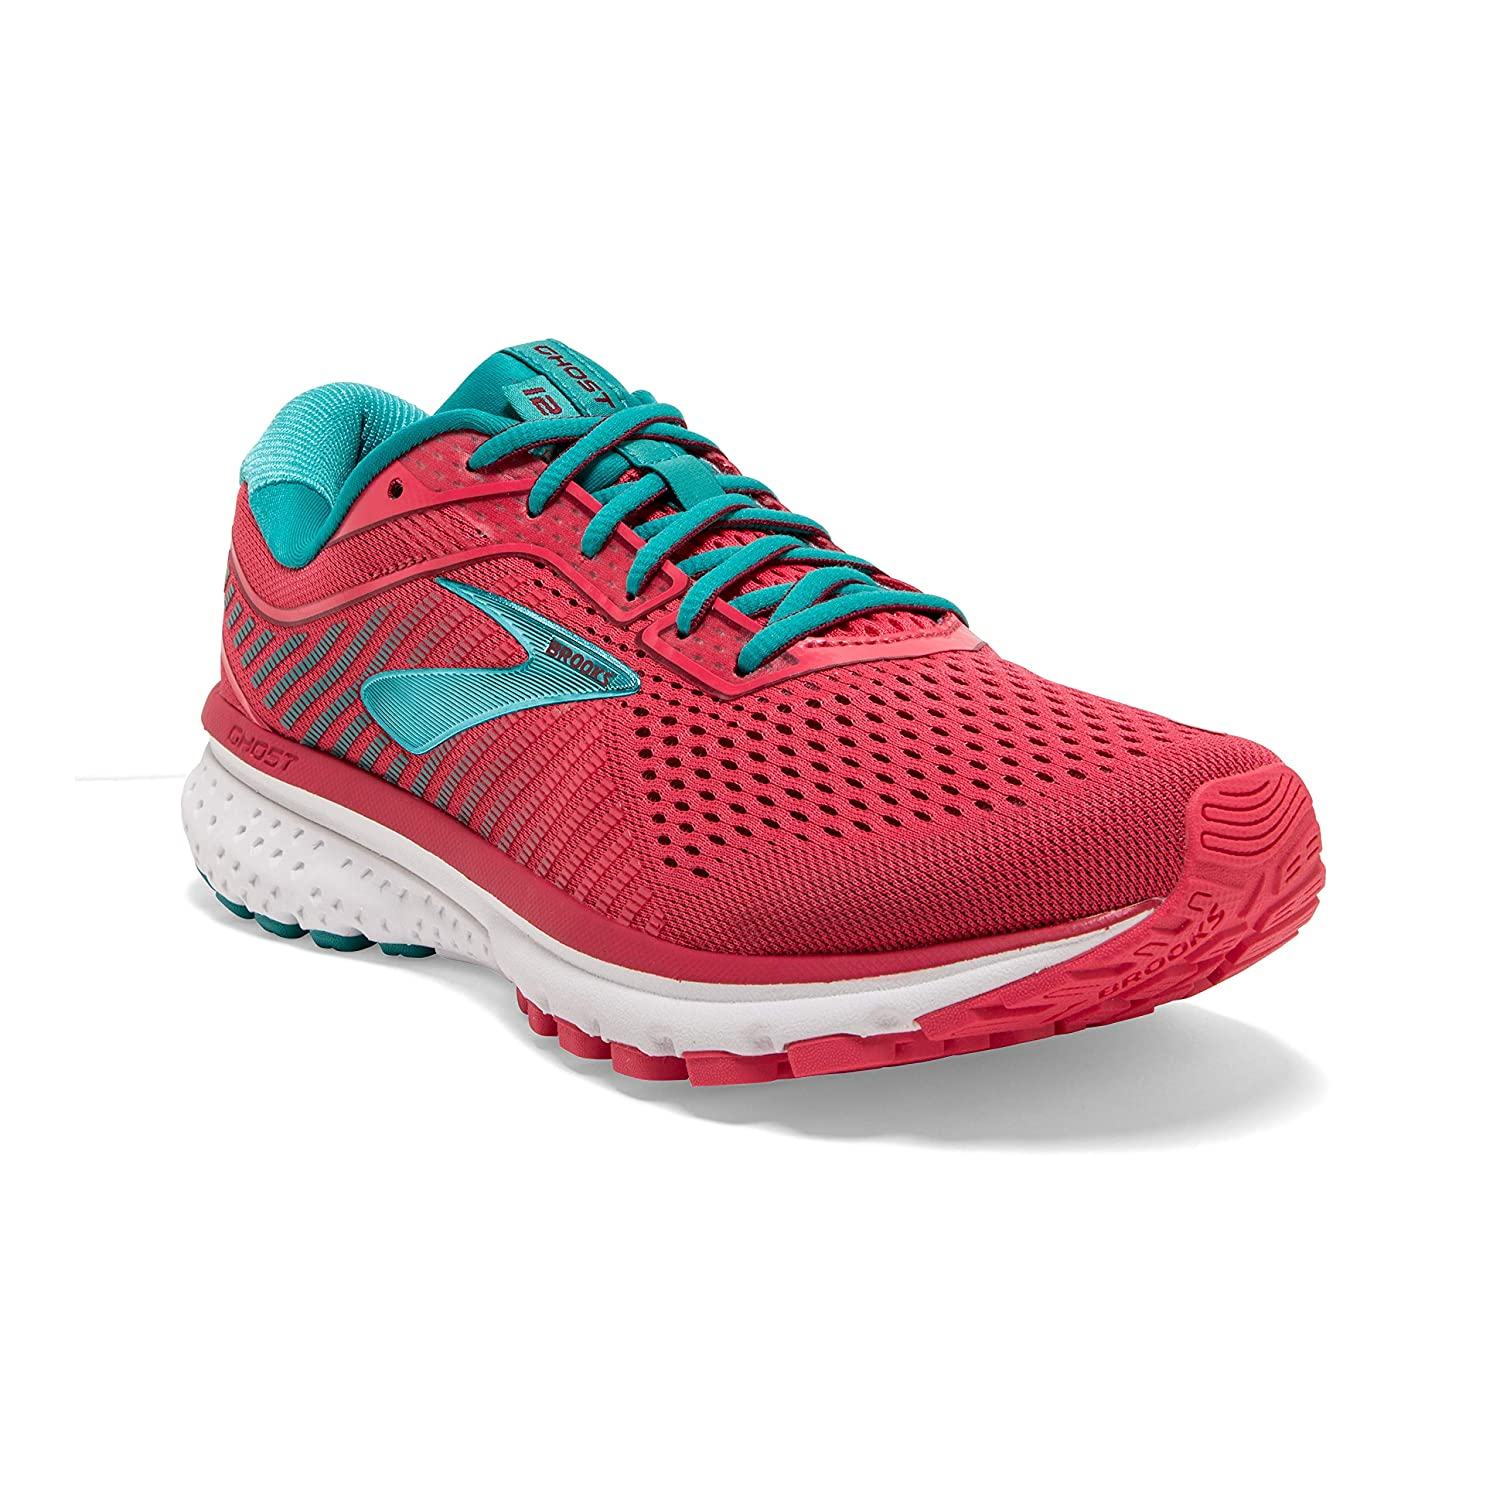 Womens-Ghost-12. +80 Most Inspiring Workout Shoes Ideas for Women